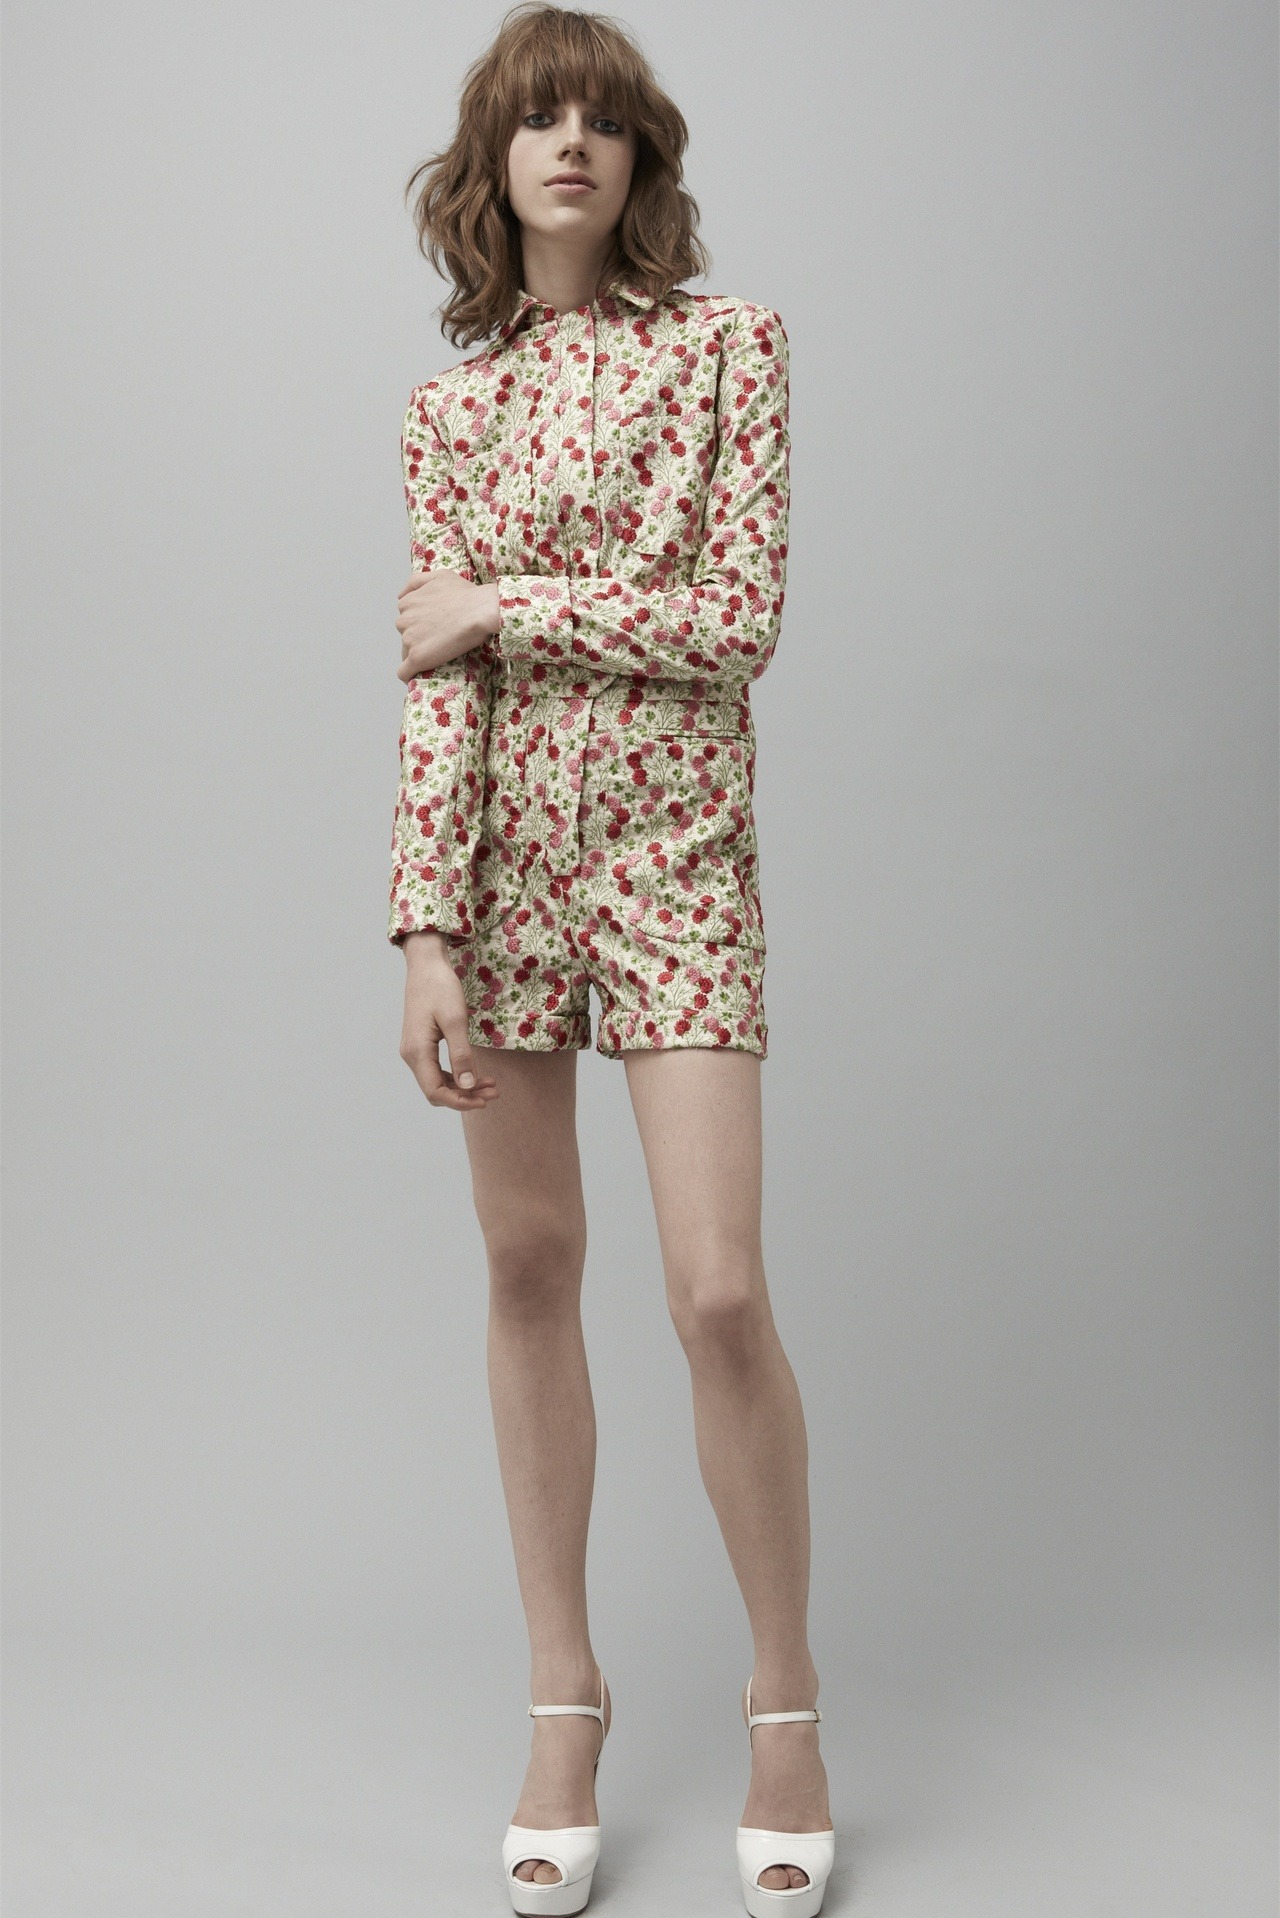 Sojourner Morrell for Jill Stuart, resort 2013